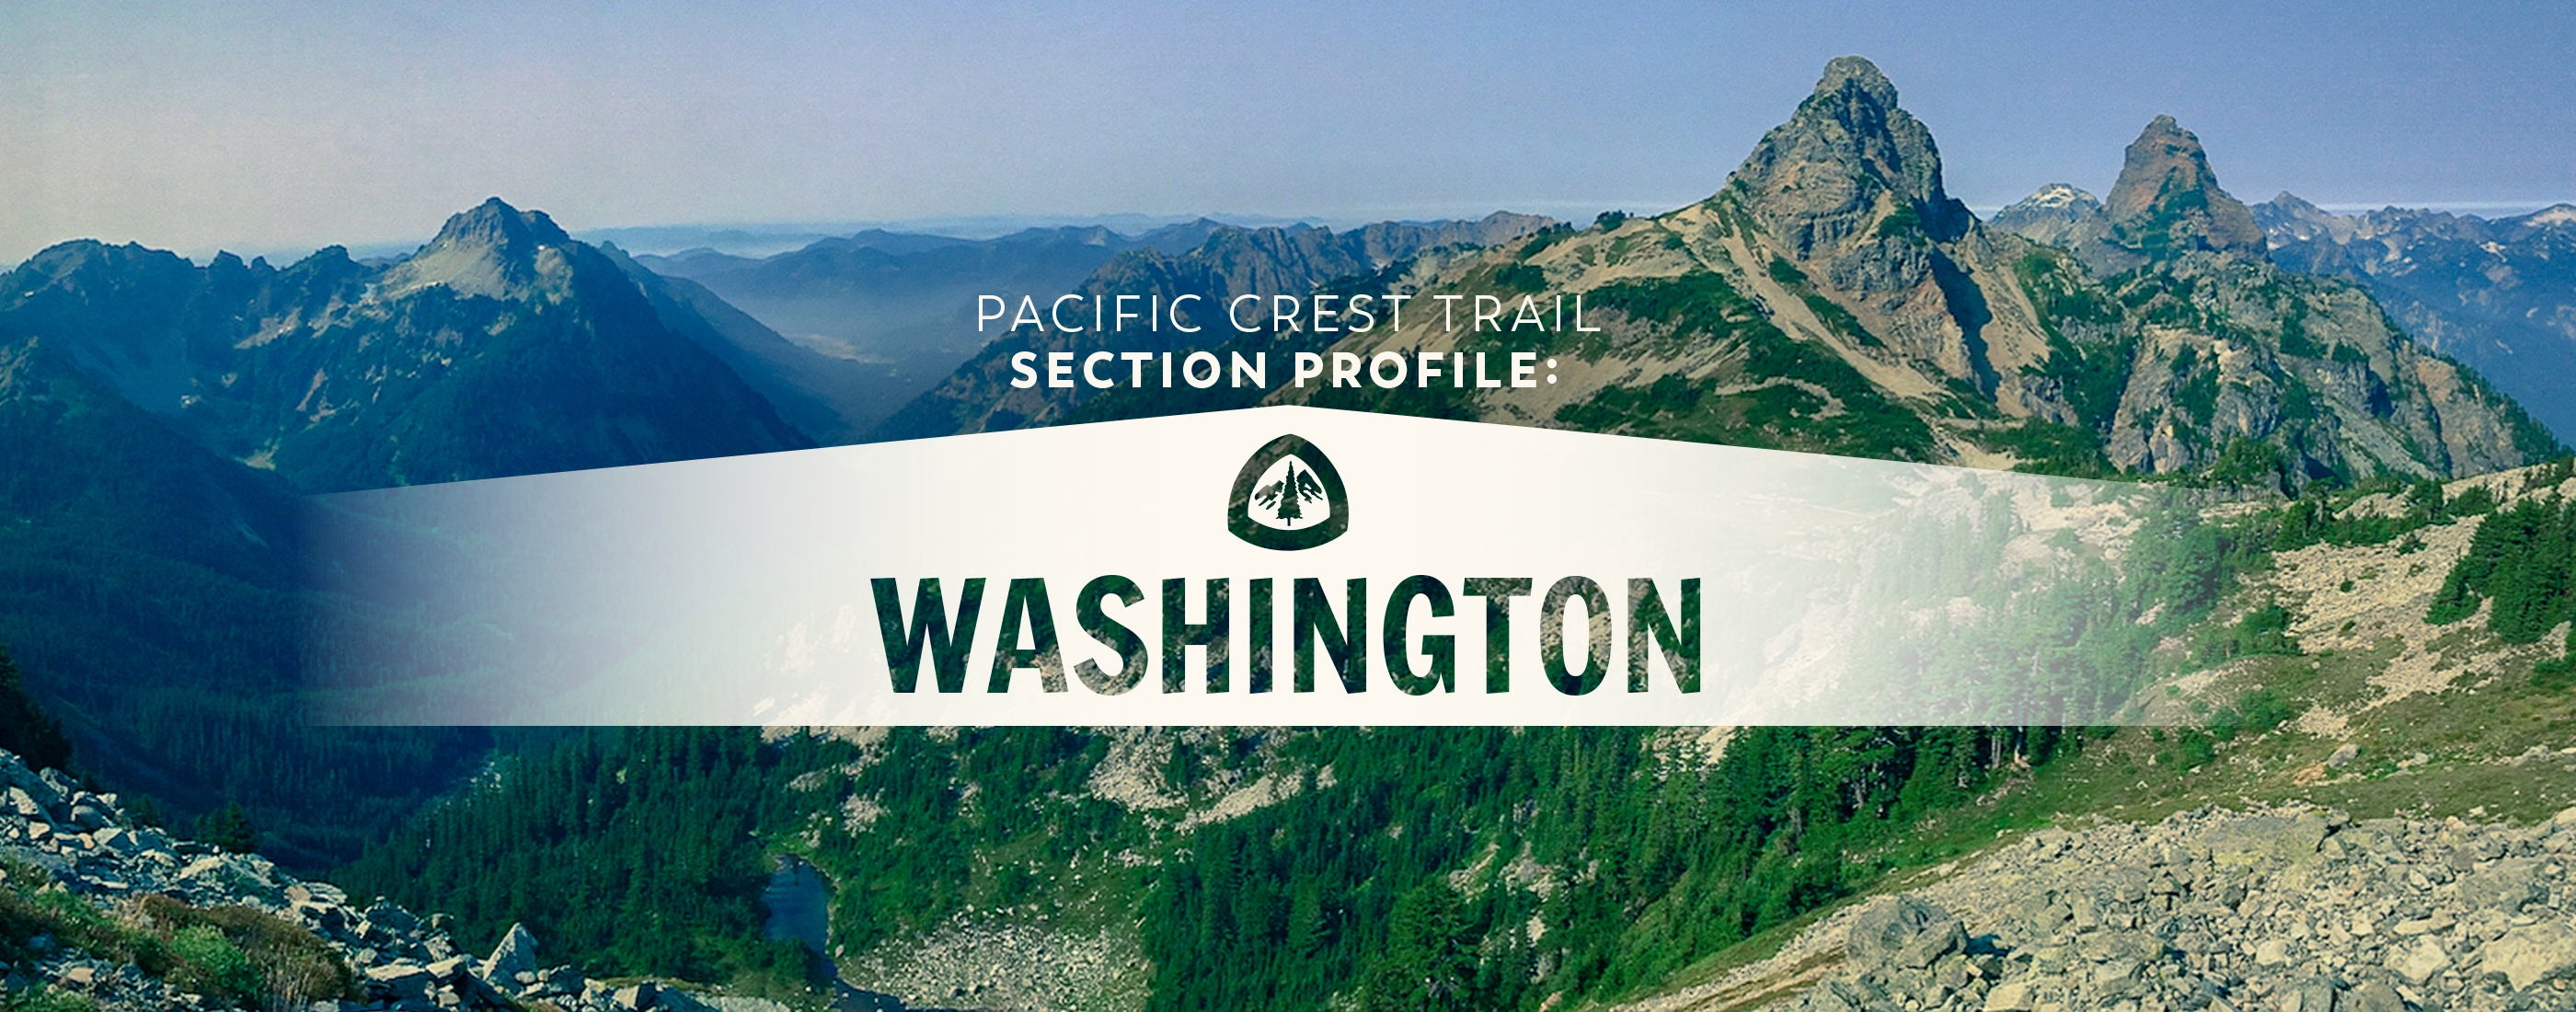 Pacific Crest Trail Section Profile: Washington - The Trek